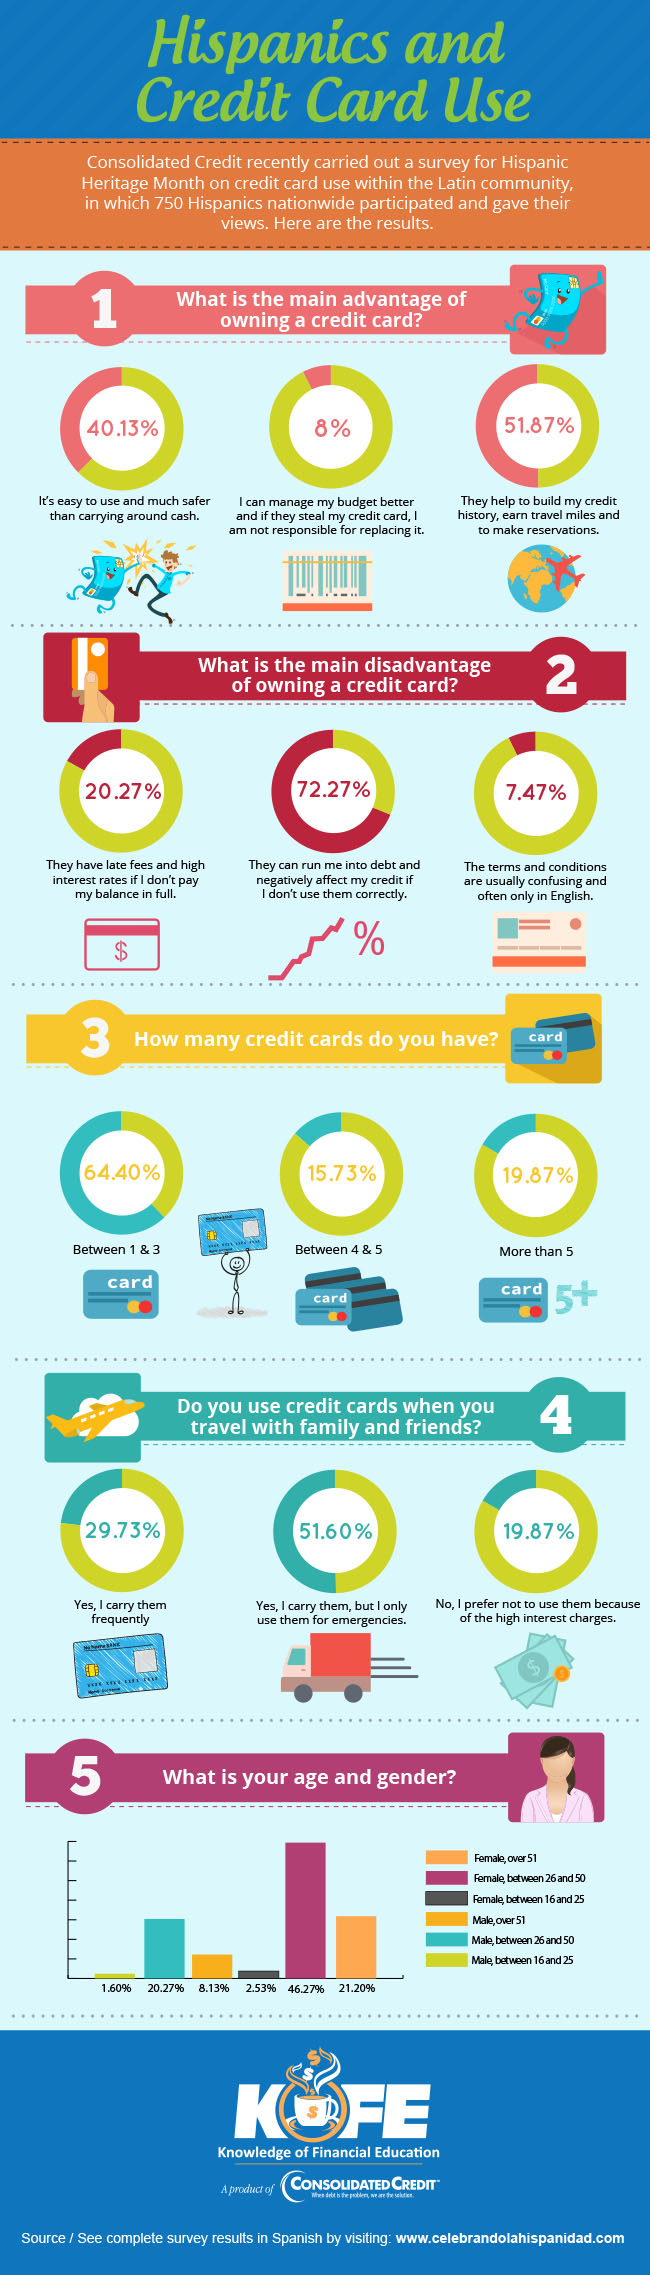 Hispanics and Credit Card Use infographic